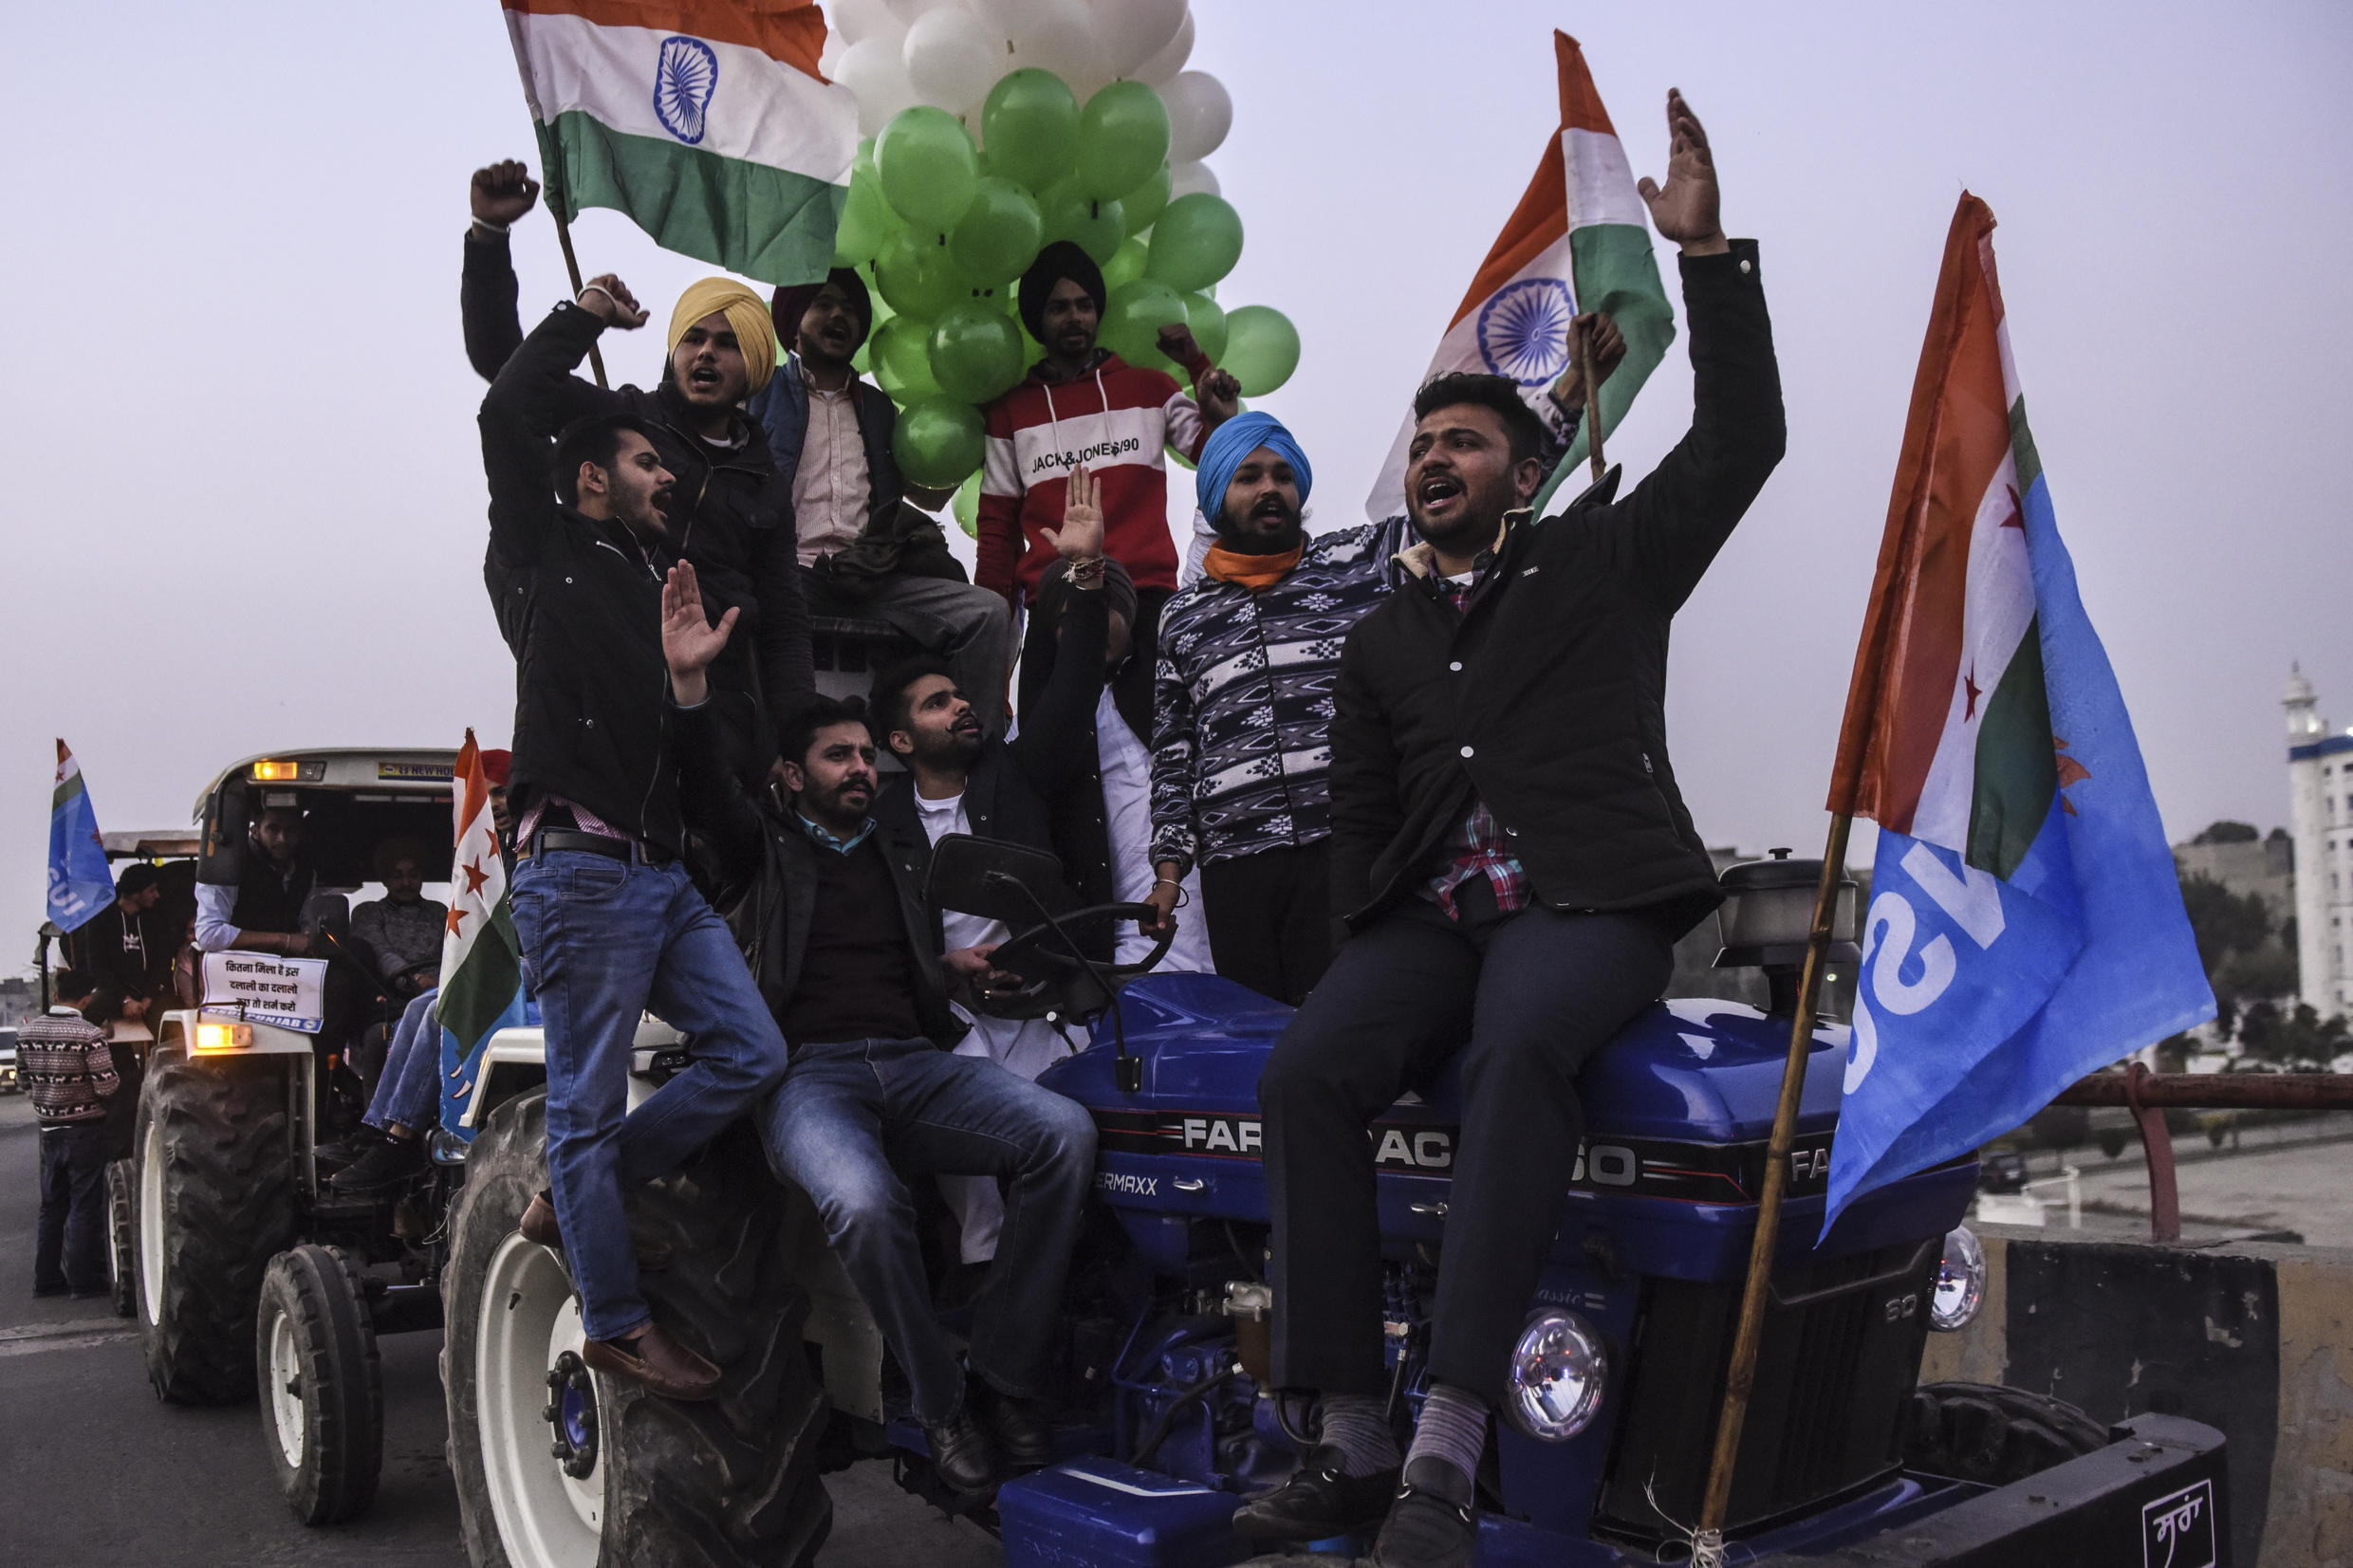 Farmers in India will hold a rally against the government's new agricultural laws the country's Republic Day